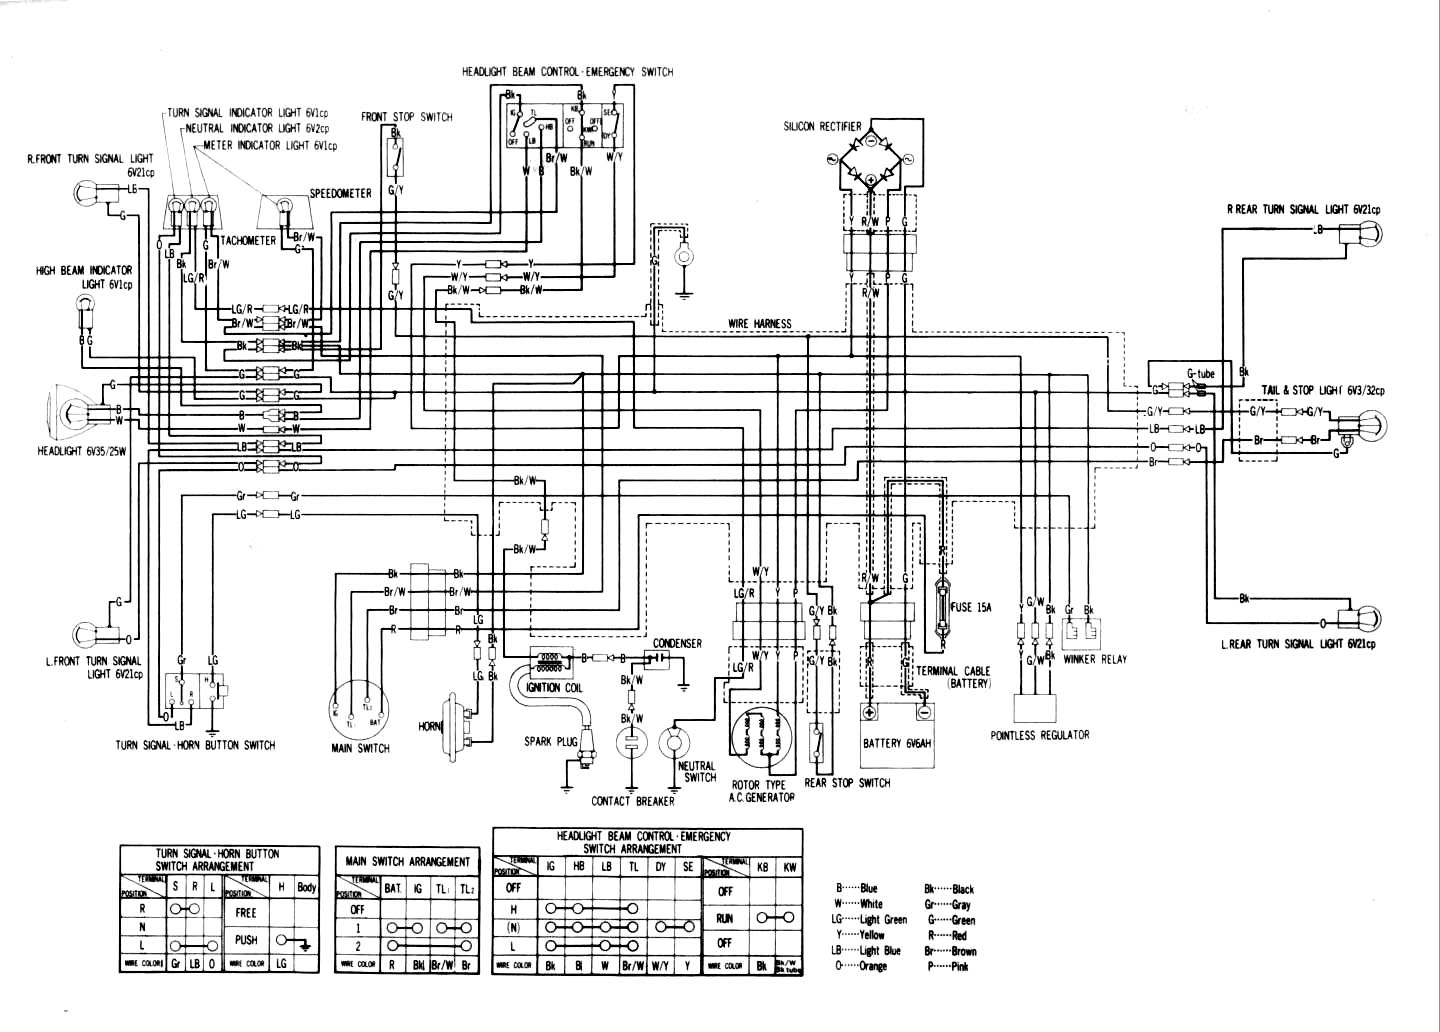 wiring diagram for honda wave 125